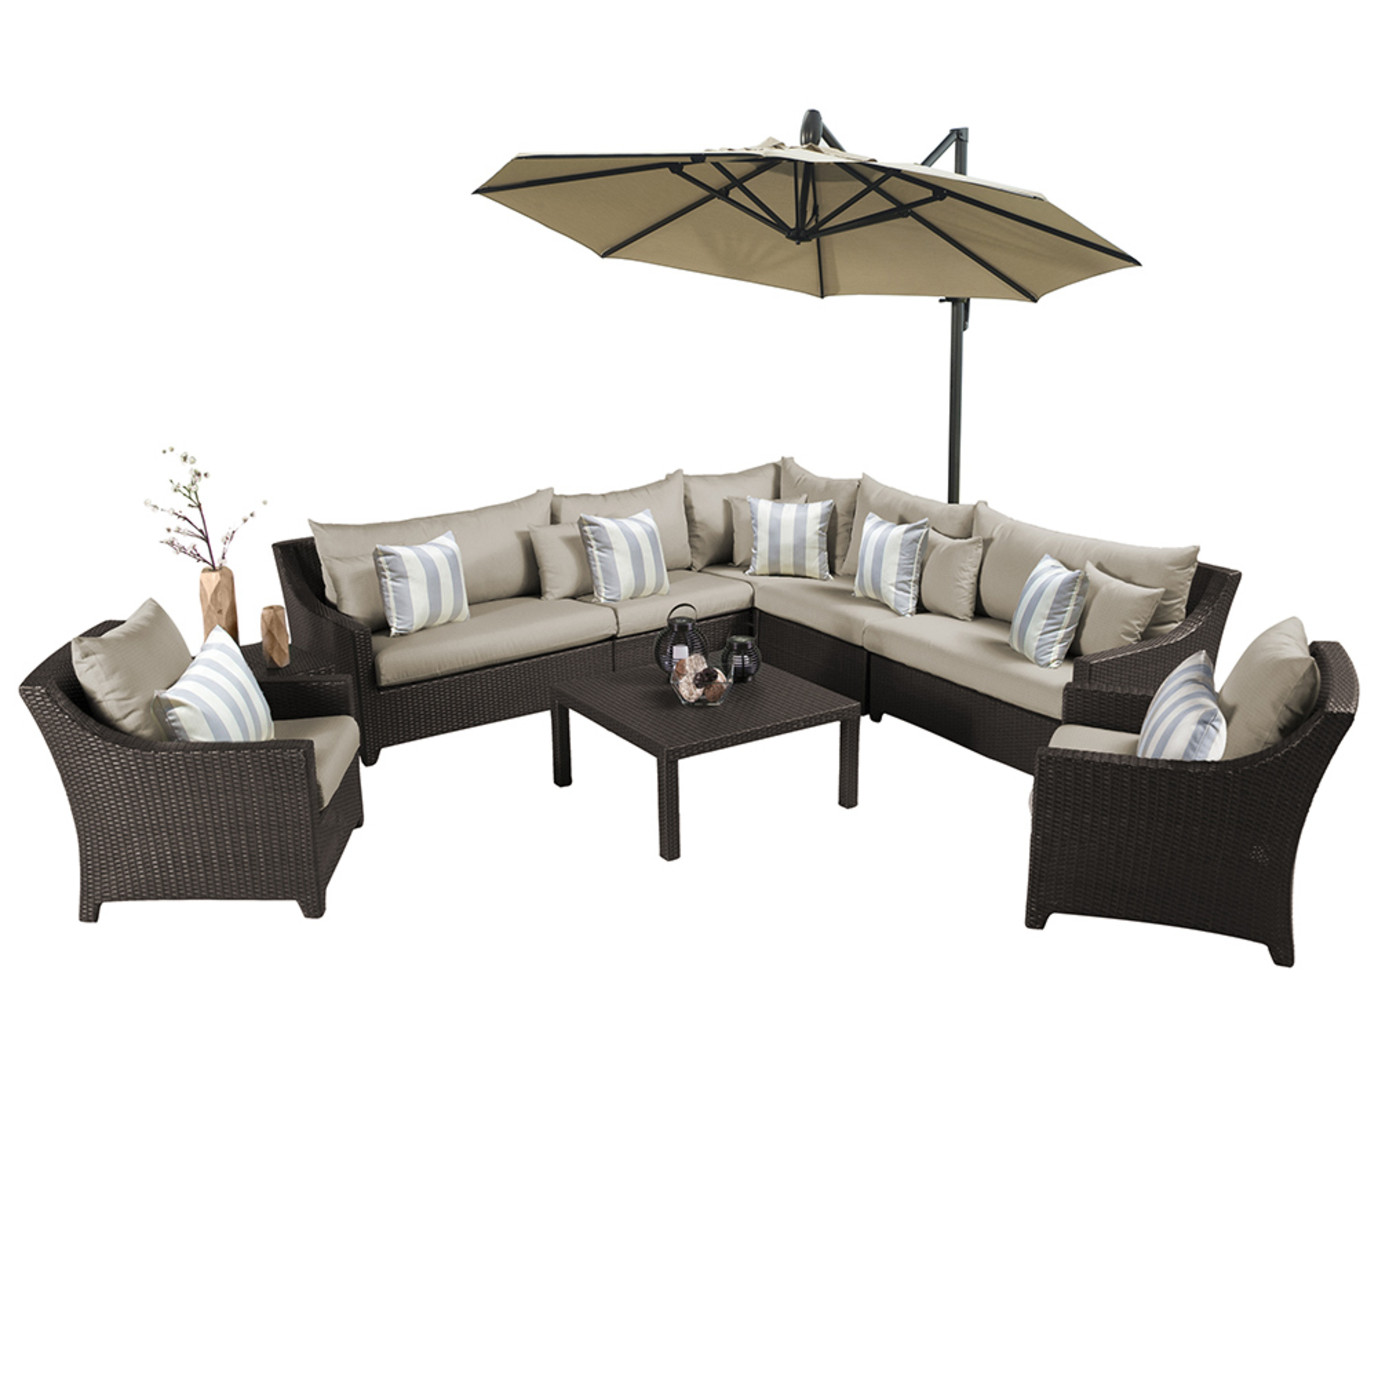 Deco™ 9pc Sectional and Club Set with Umbrella - Slate Gray